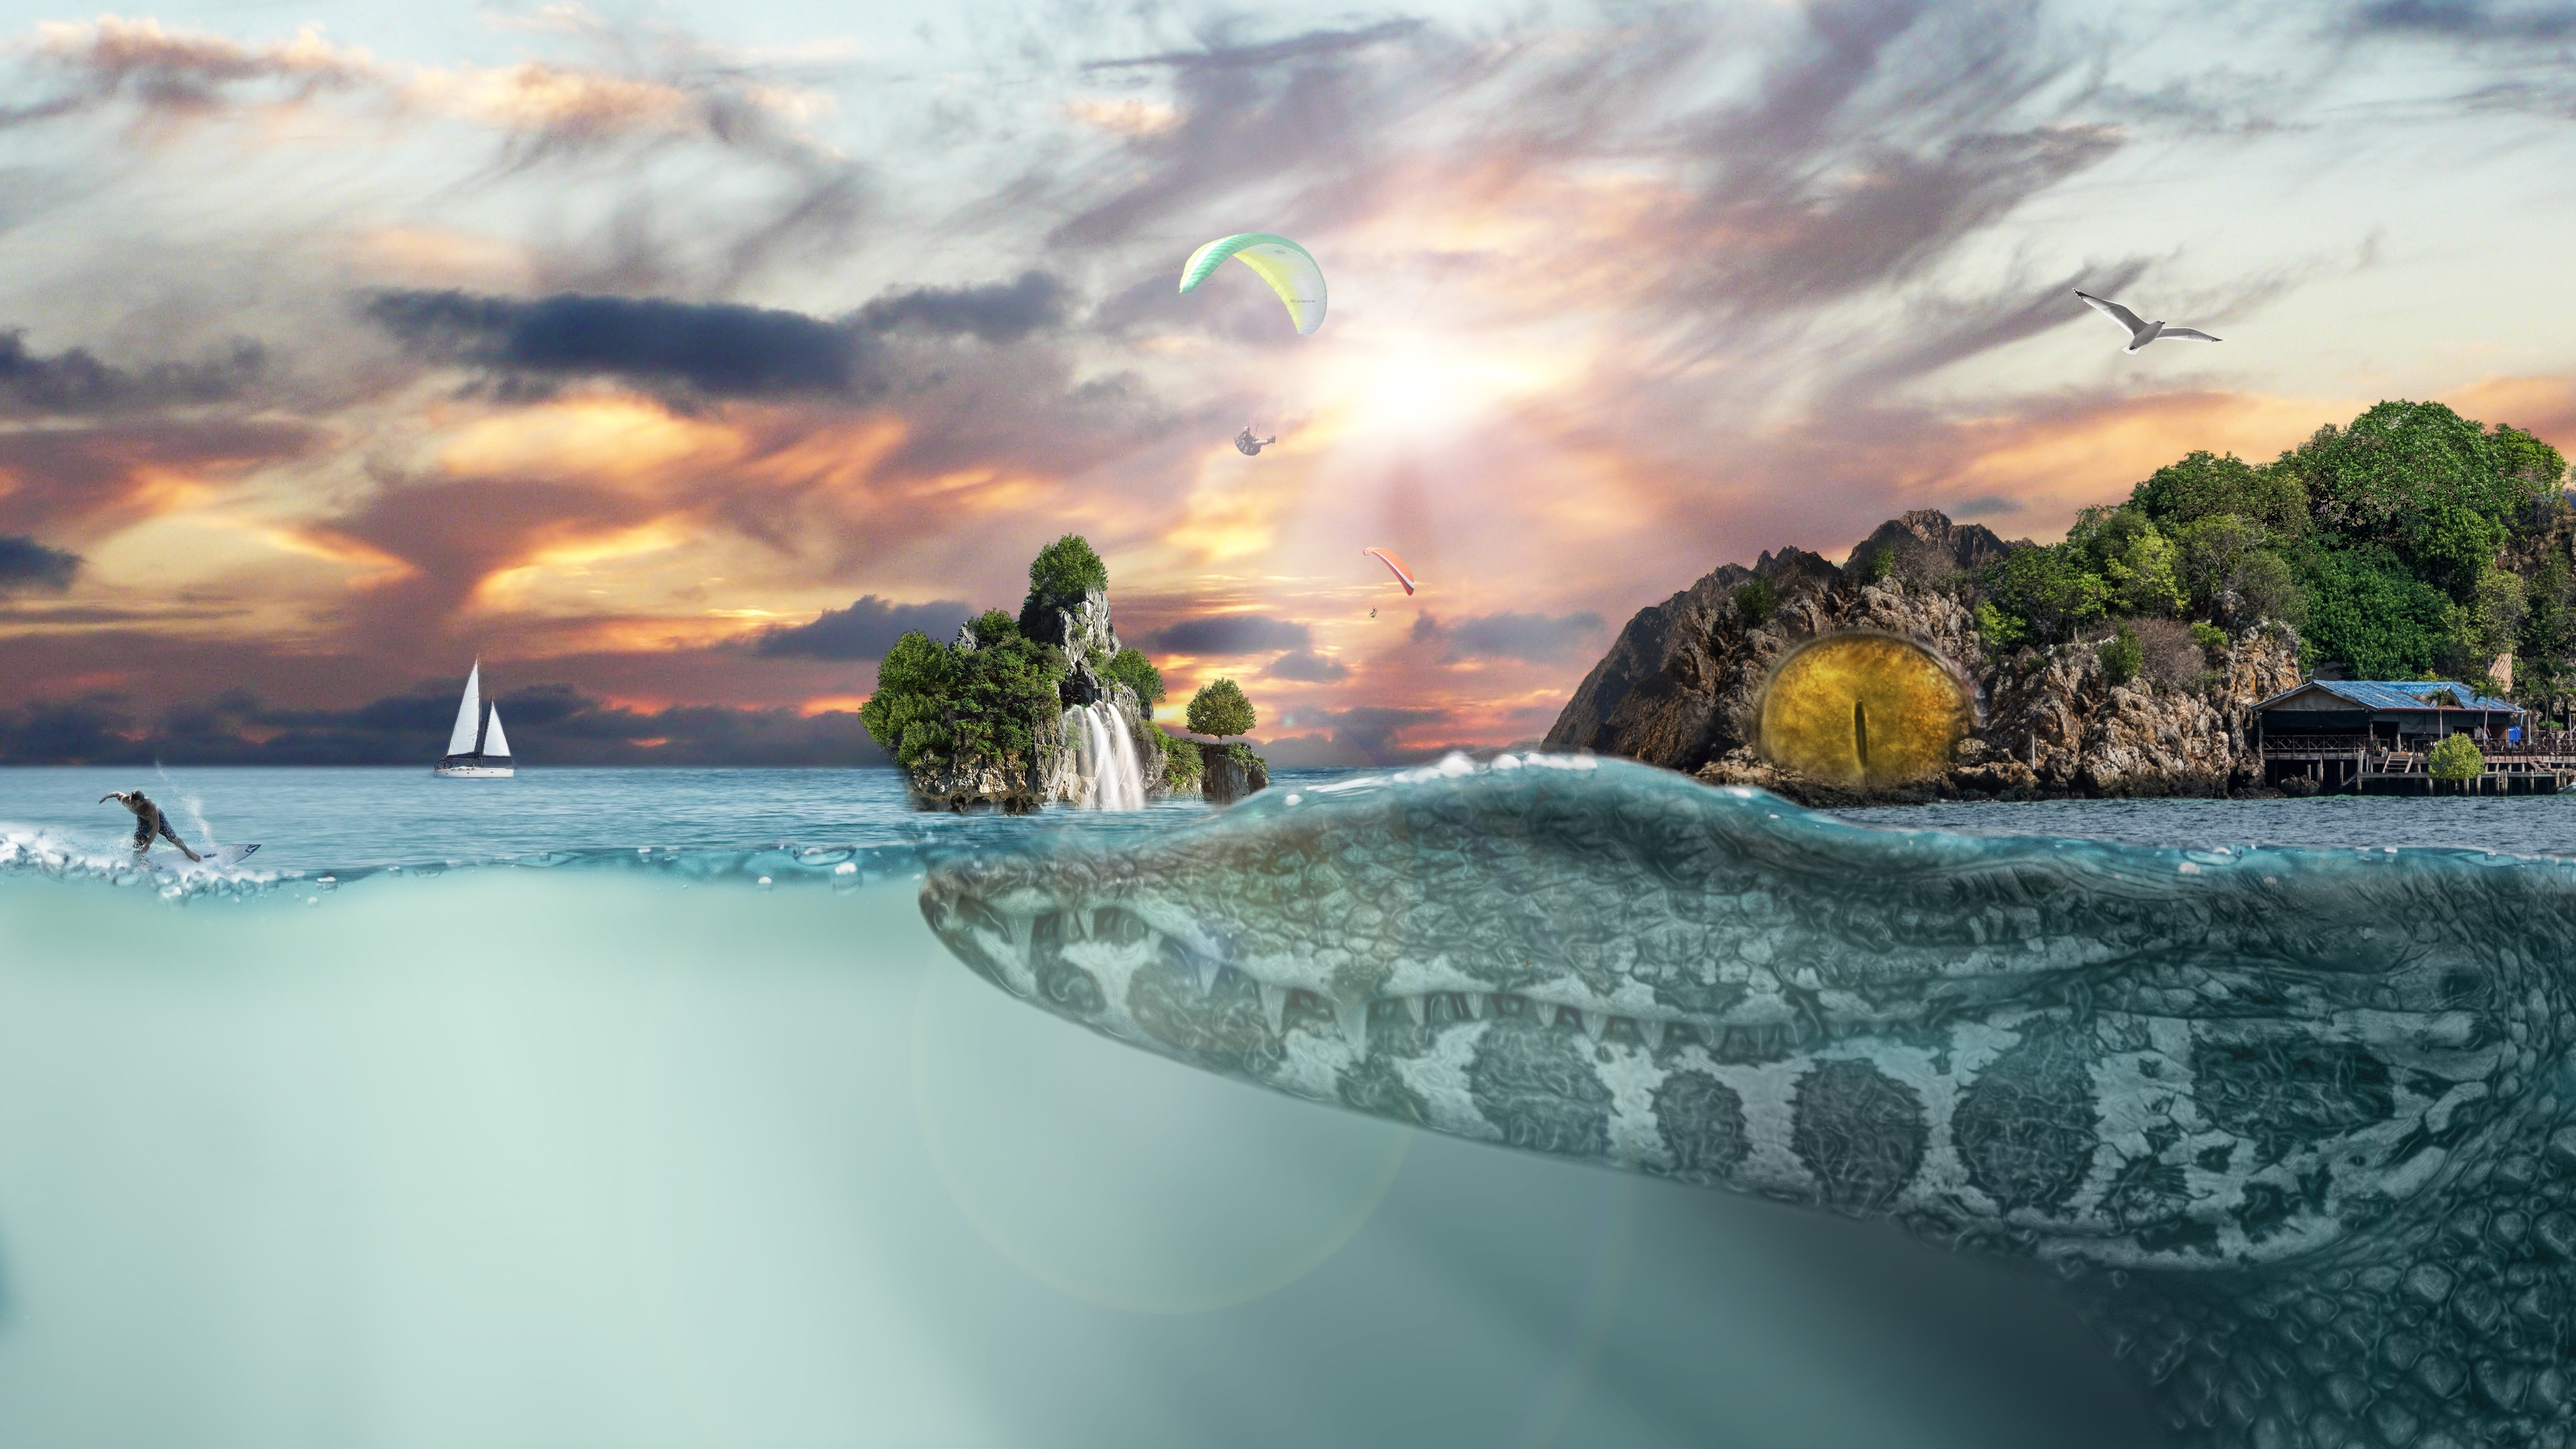 Sea Island Fantasy Hd Creative 4k Wallpapers Images